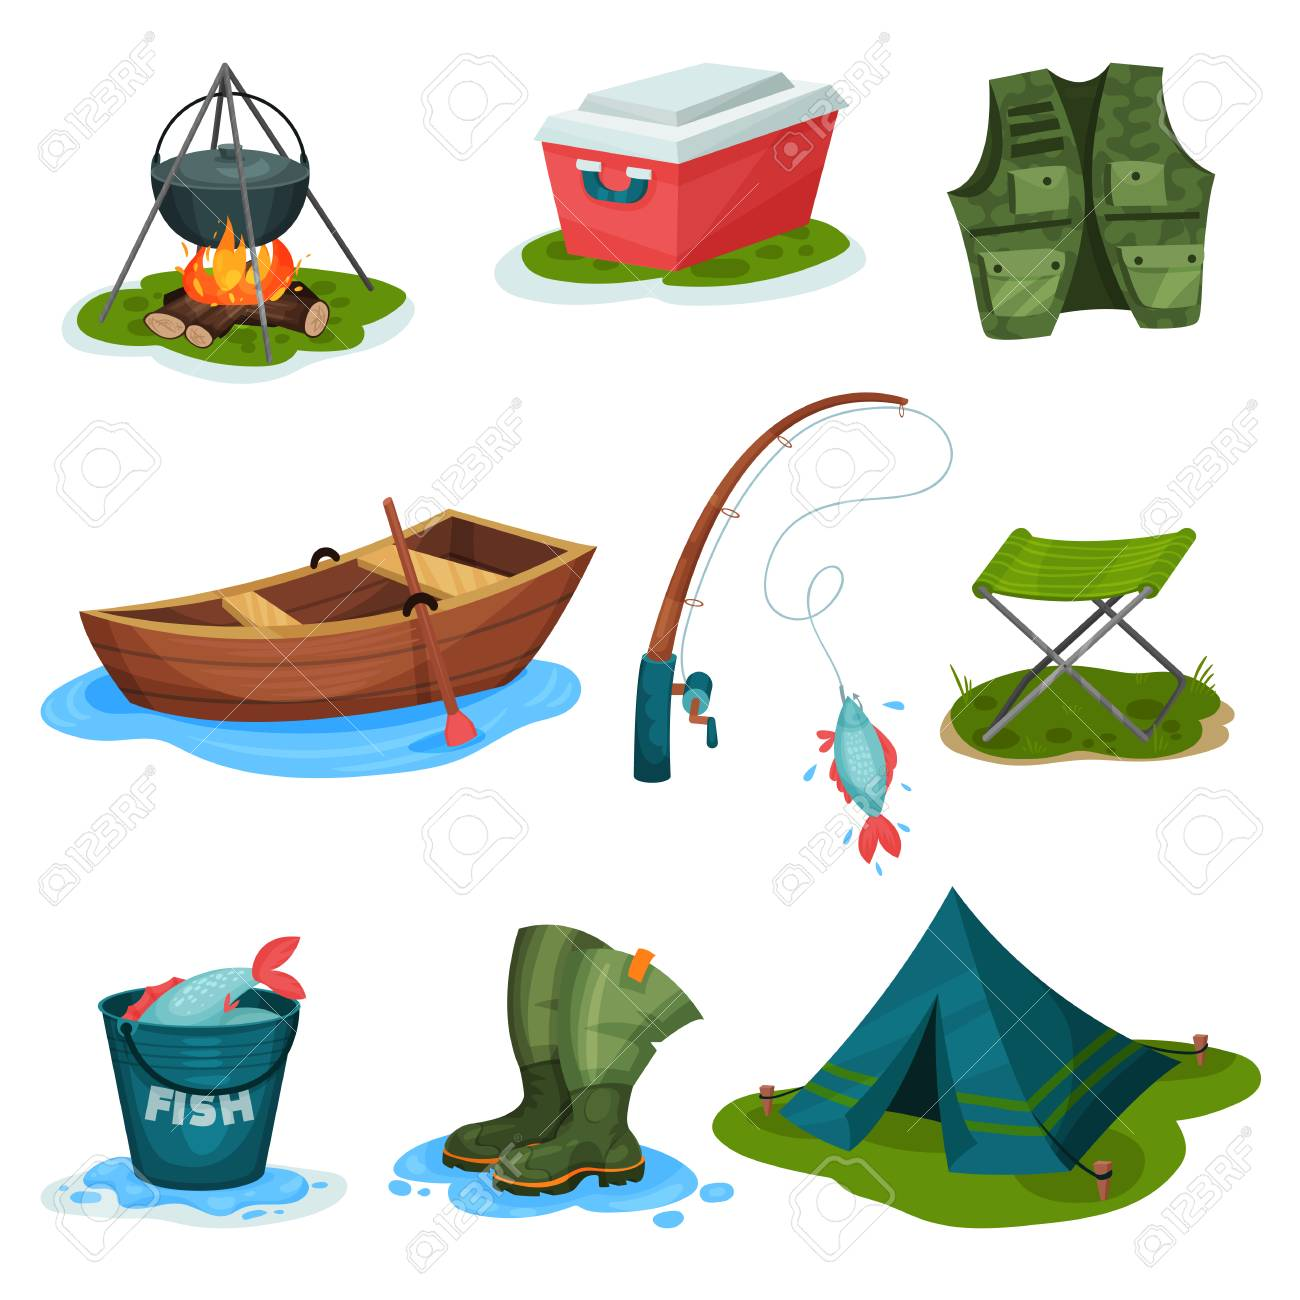 Fishing sport symbols set, outdoor activity equipment vector Illustrations isolated on a white background. - 105831855